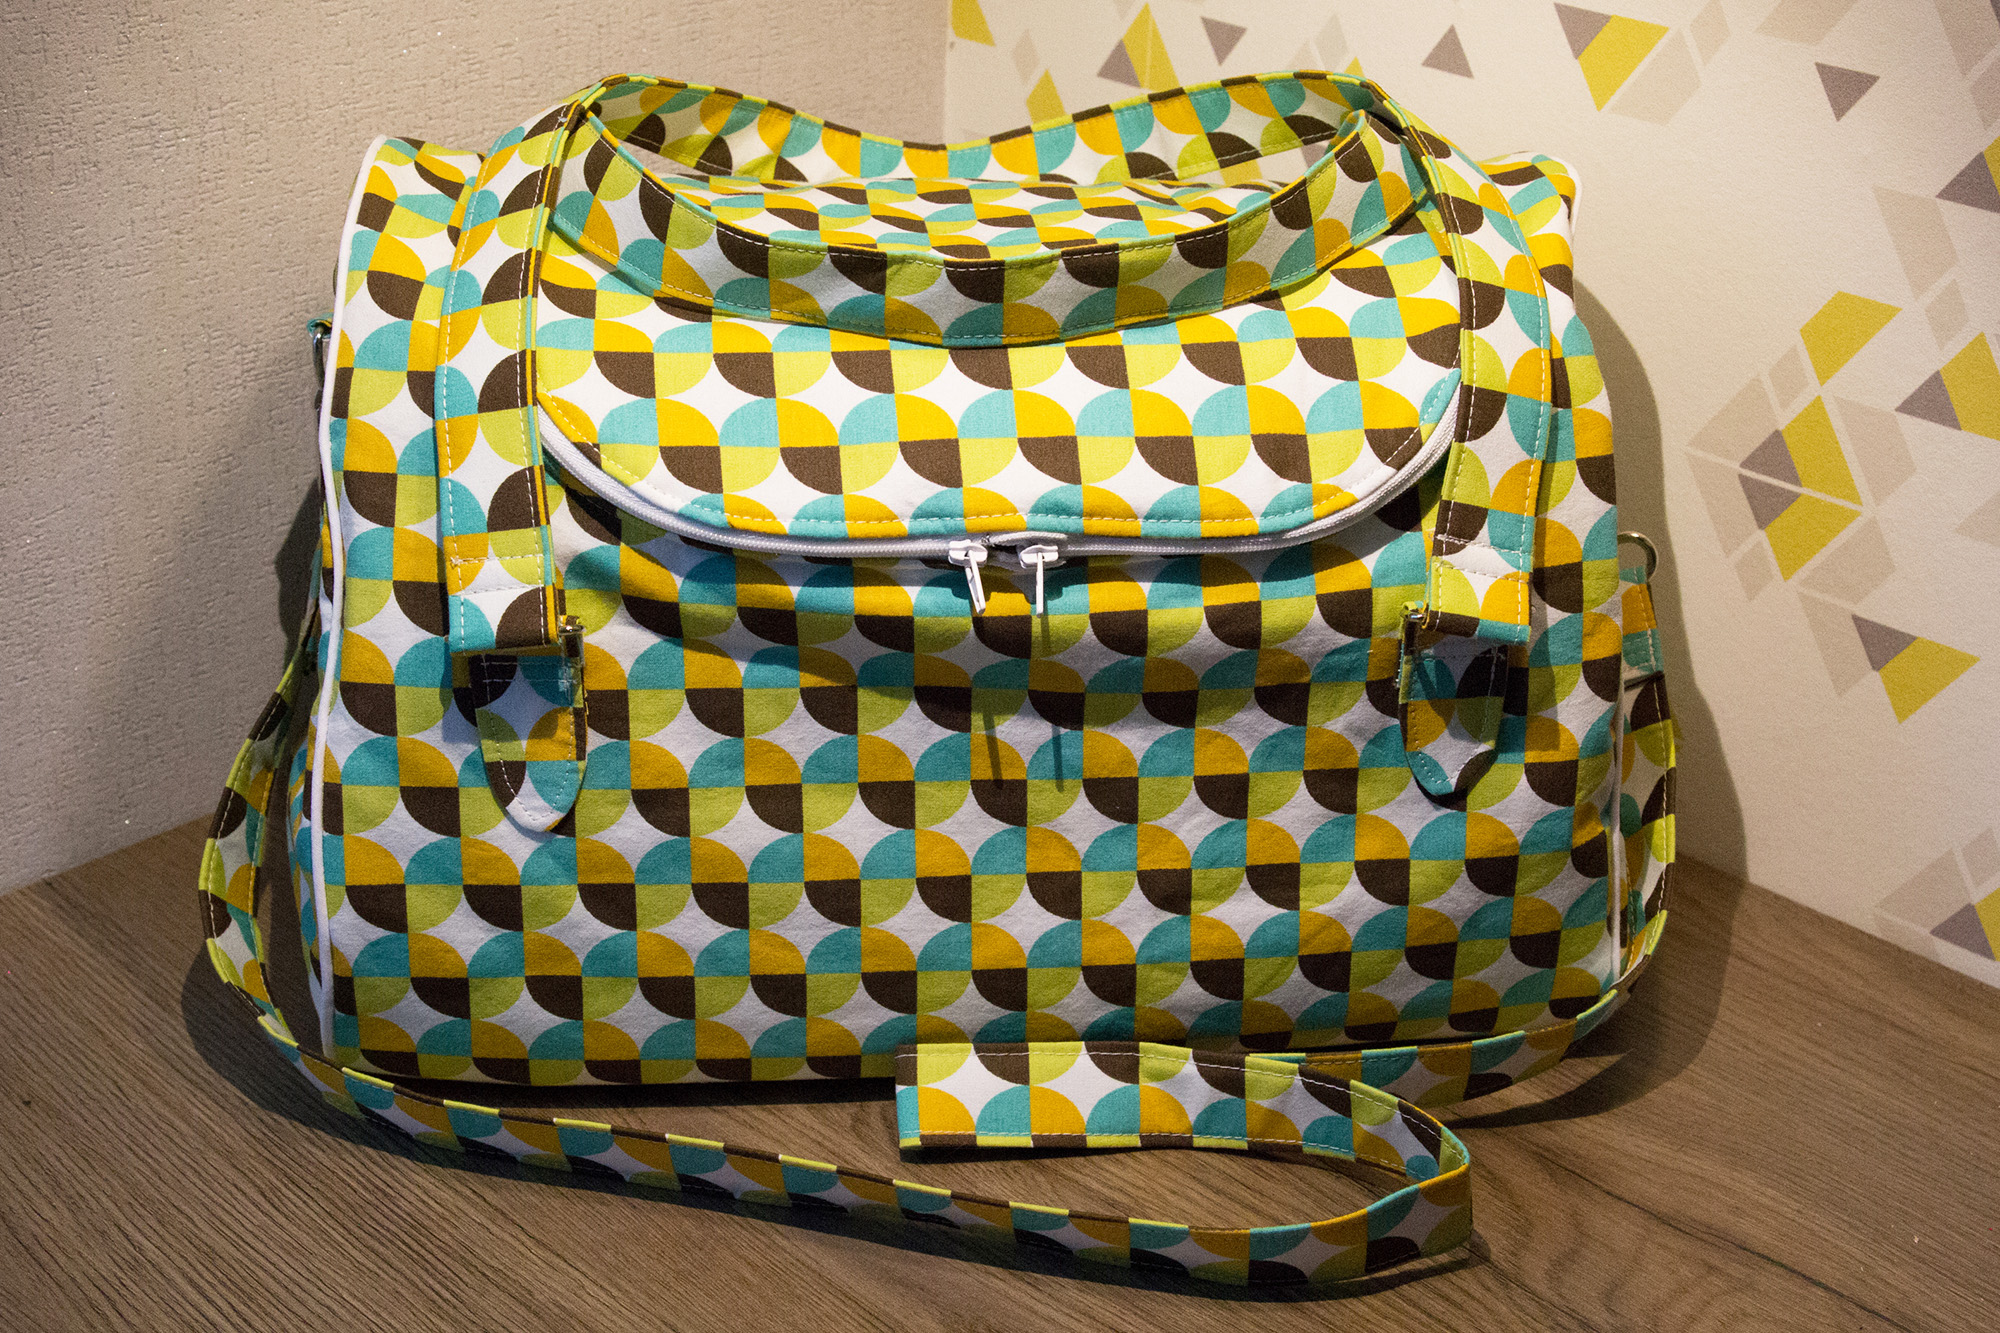 Sew Sweetness Tortoise Bag, sewn by Sophie